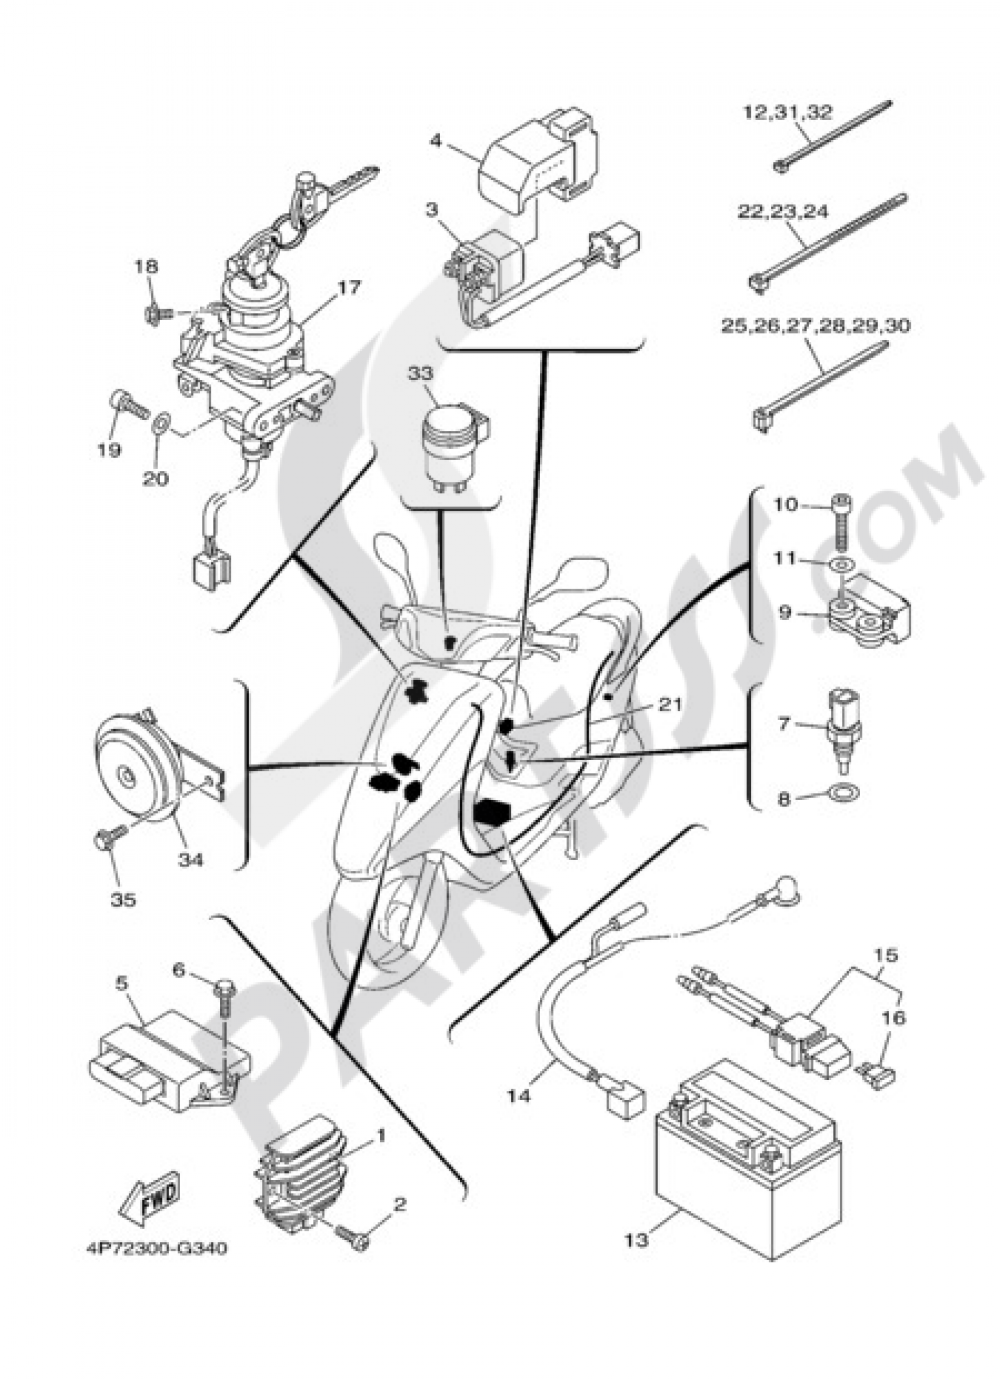 vity-125-2009-46-fig-34-equipo-electrico-1_1000 png